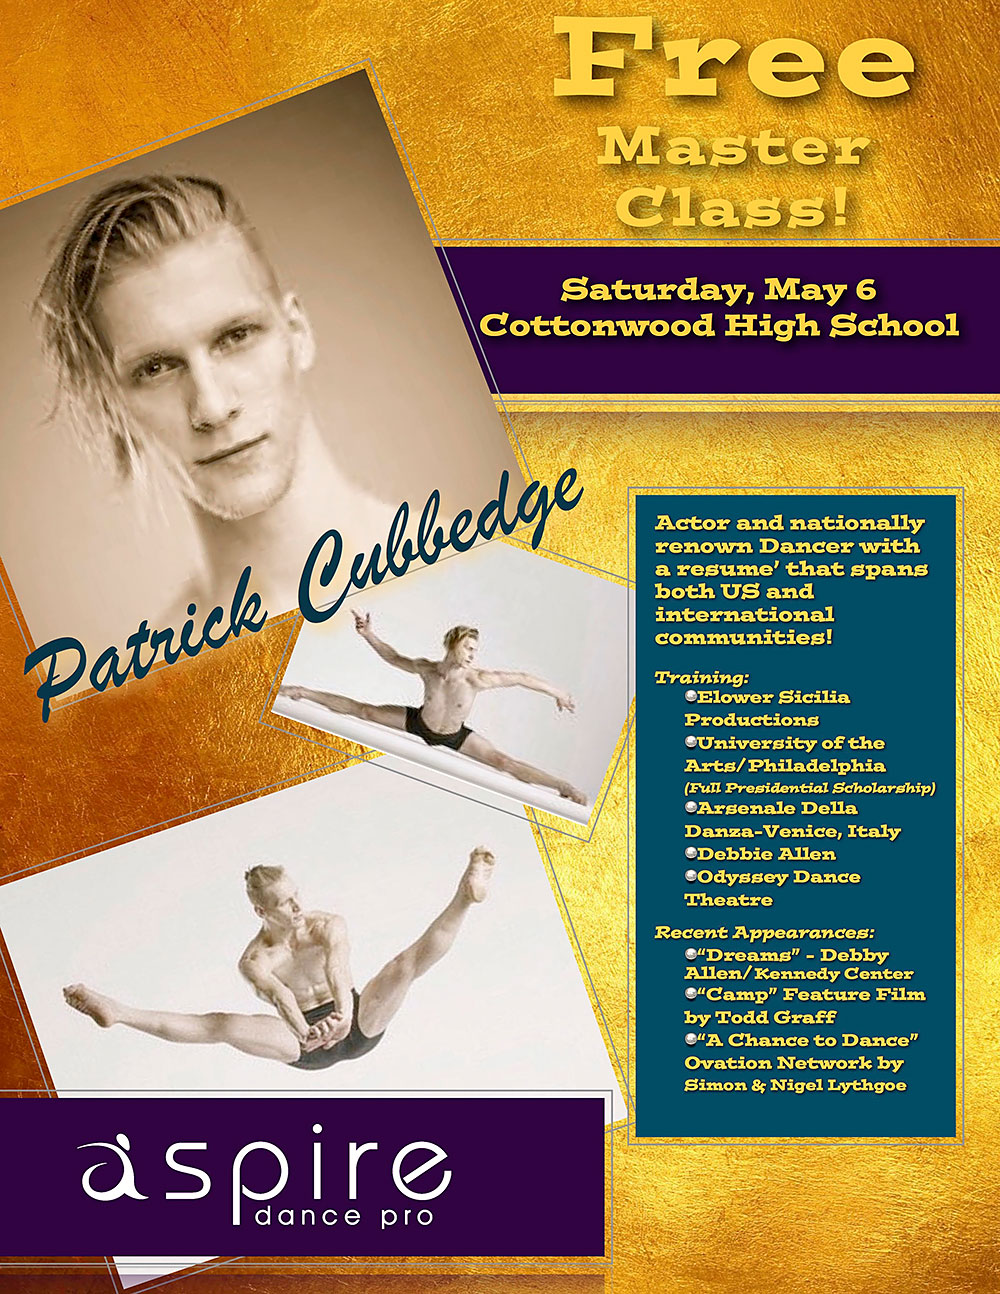 Patrick Cubbedge - Aspire Dance Pro Competitions Masterclass Instructor